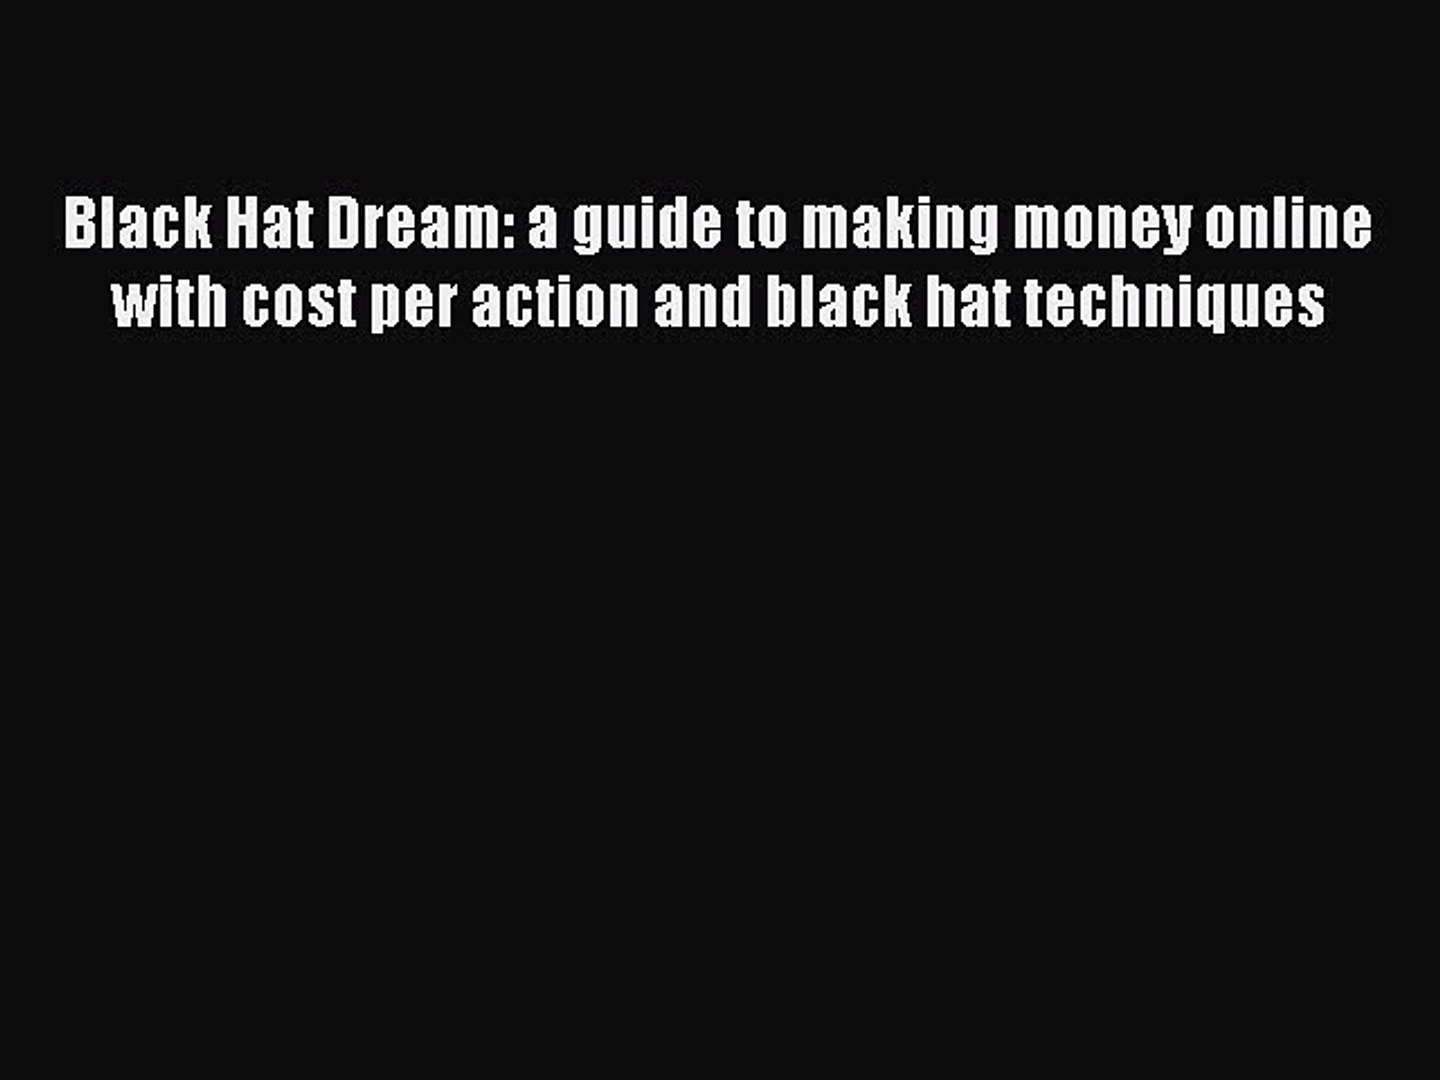 [PDF] Black Hat Dream: a guide to making money online with cost per action  and black hat techniques